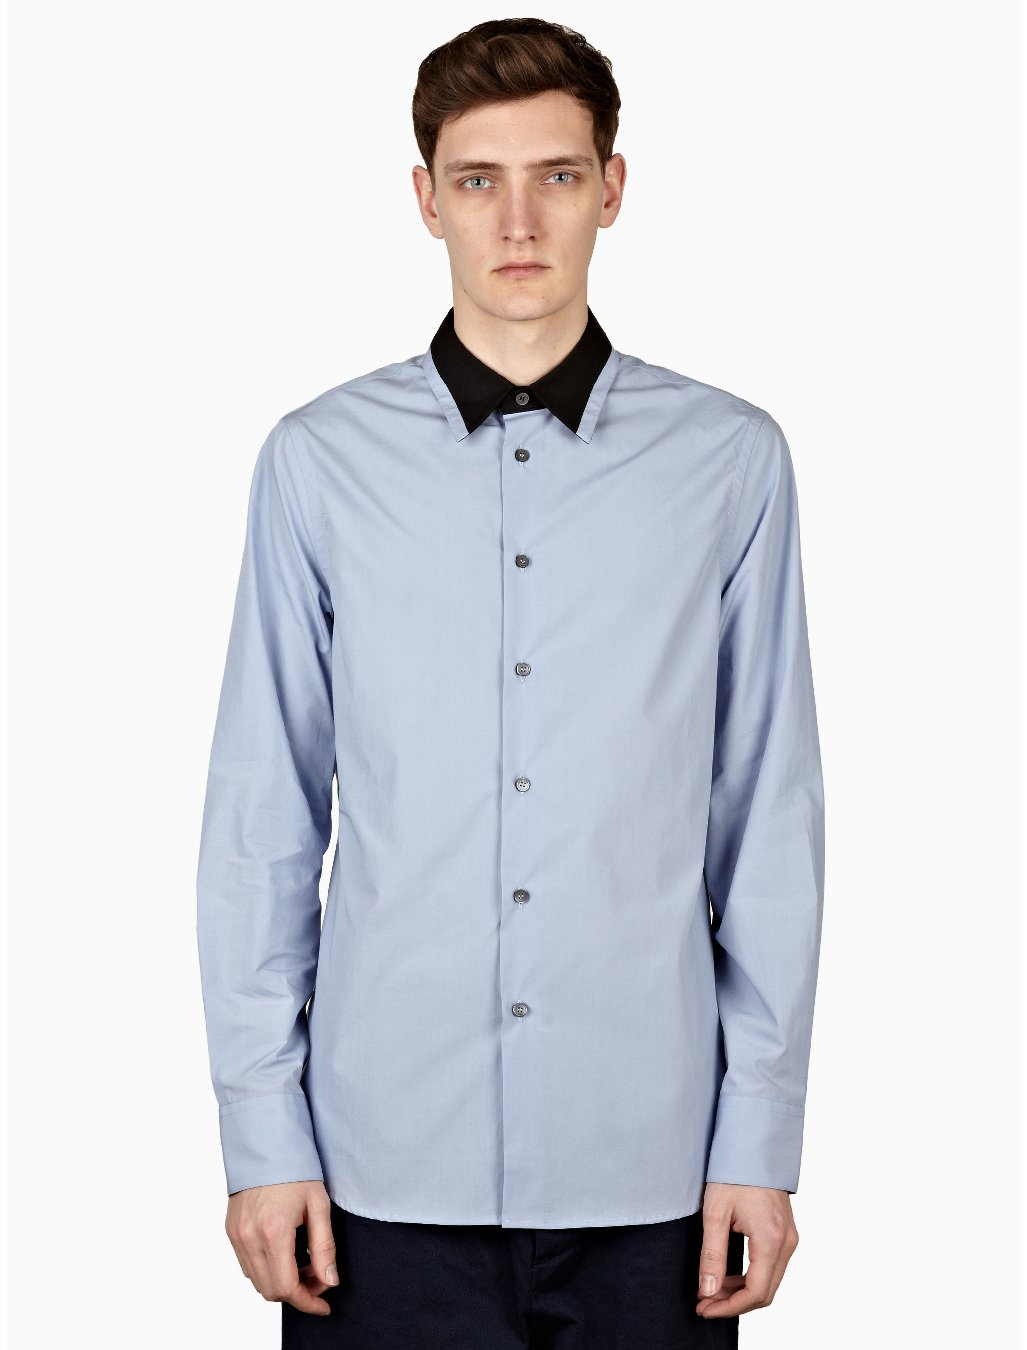 Marni Mens Light Blue Long Sleeve Polo Shirt In Blue For